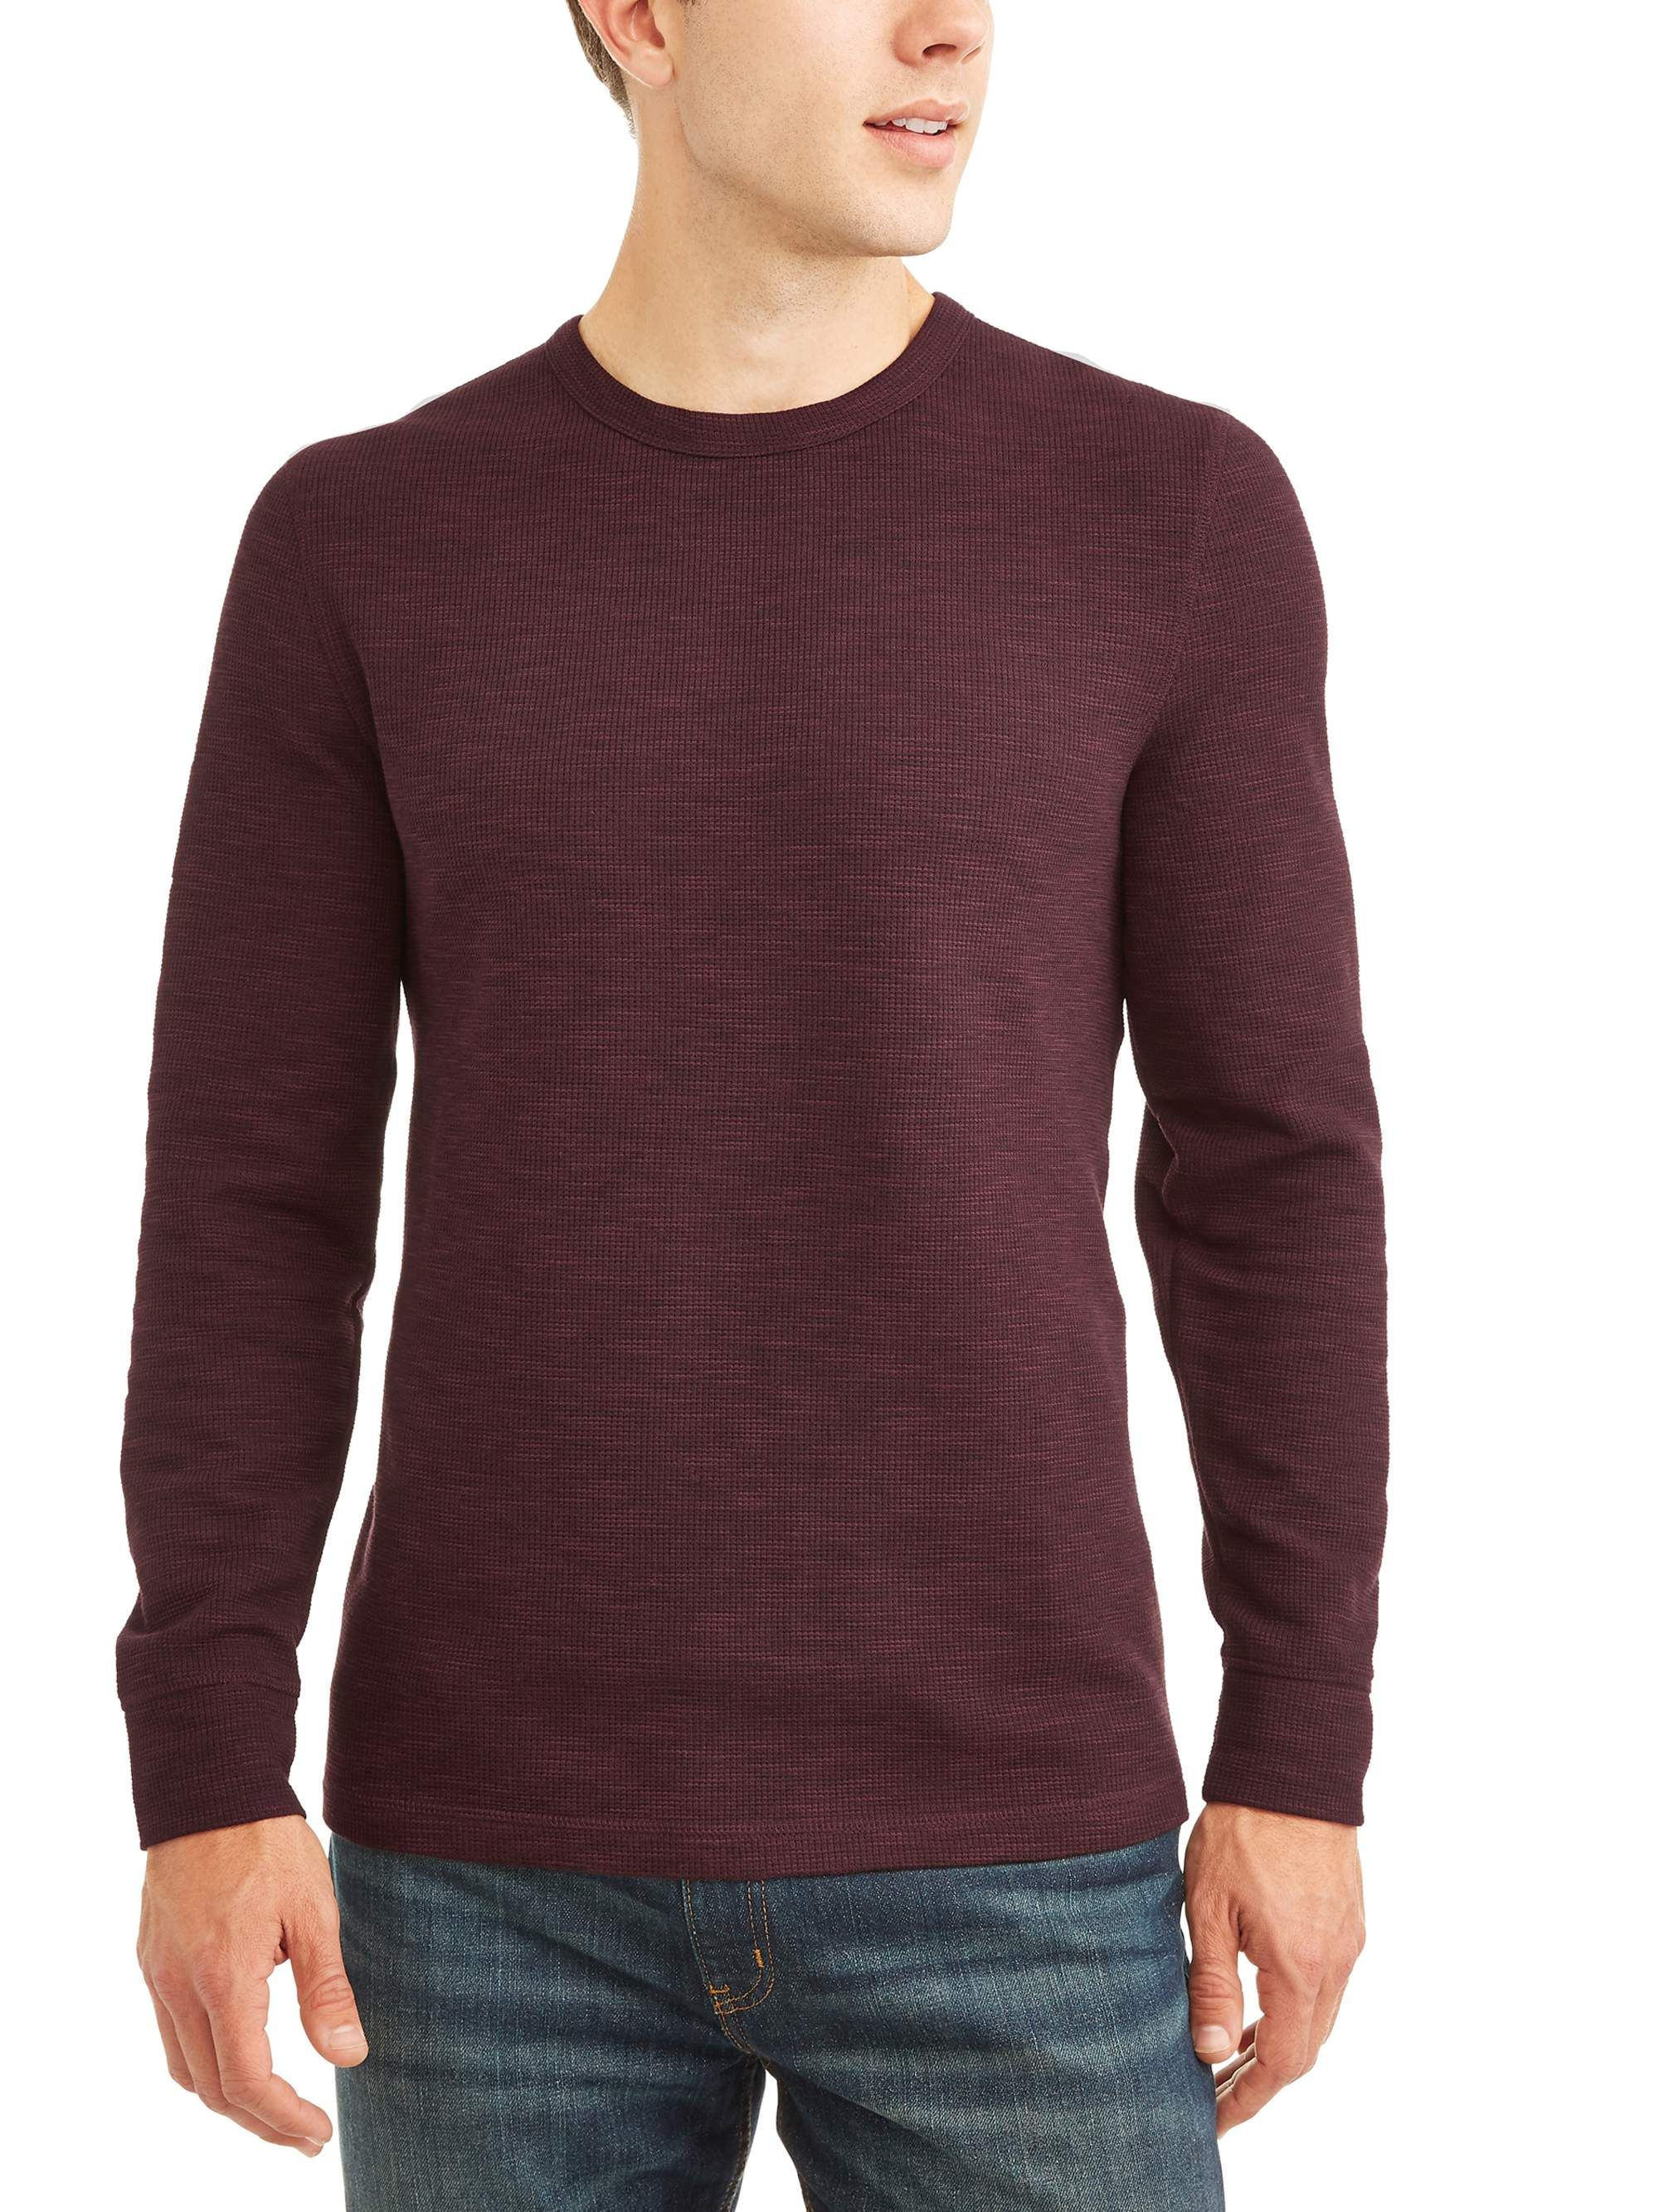 George George Men S Long Sleeve Thermal Crew Up To Size 5xl Walmart Com Maroon Shirts Long Sleeve Shirt Men Mens Long Sleeve [ 2667 x 2000 Pixel ]